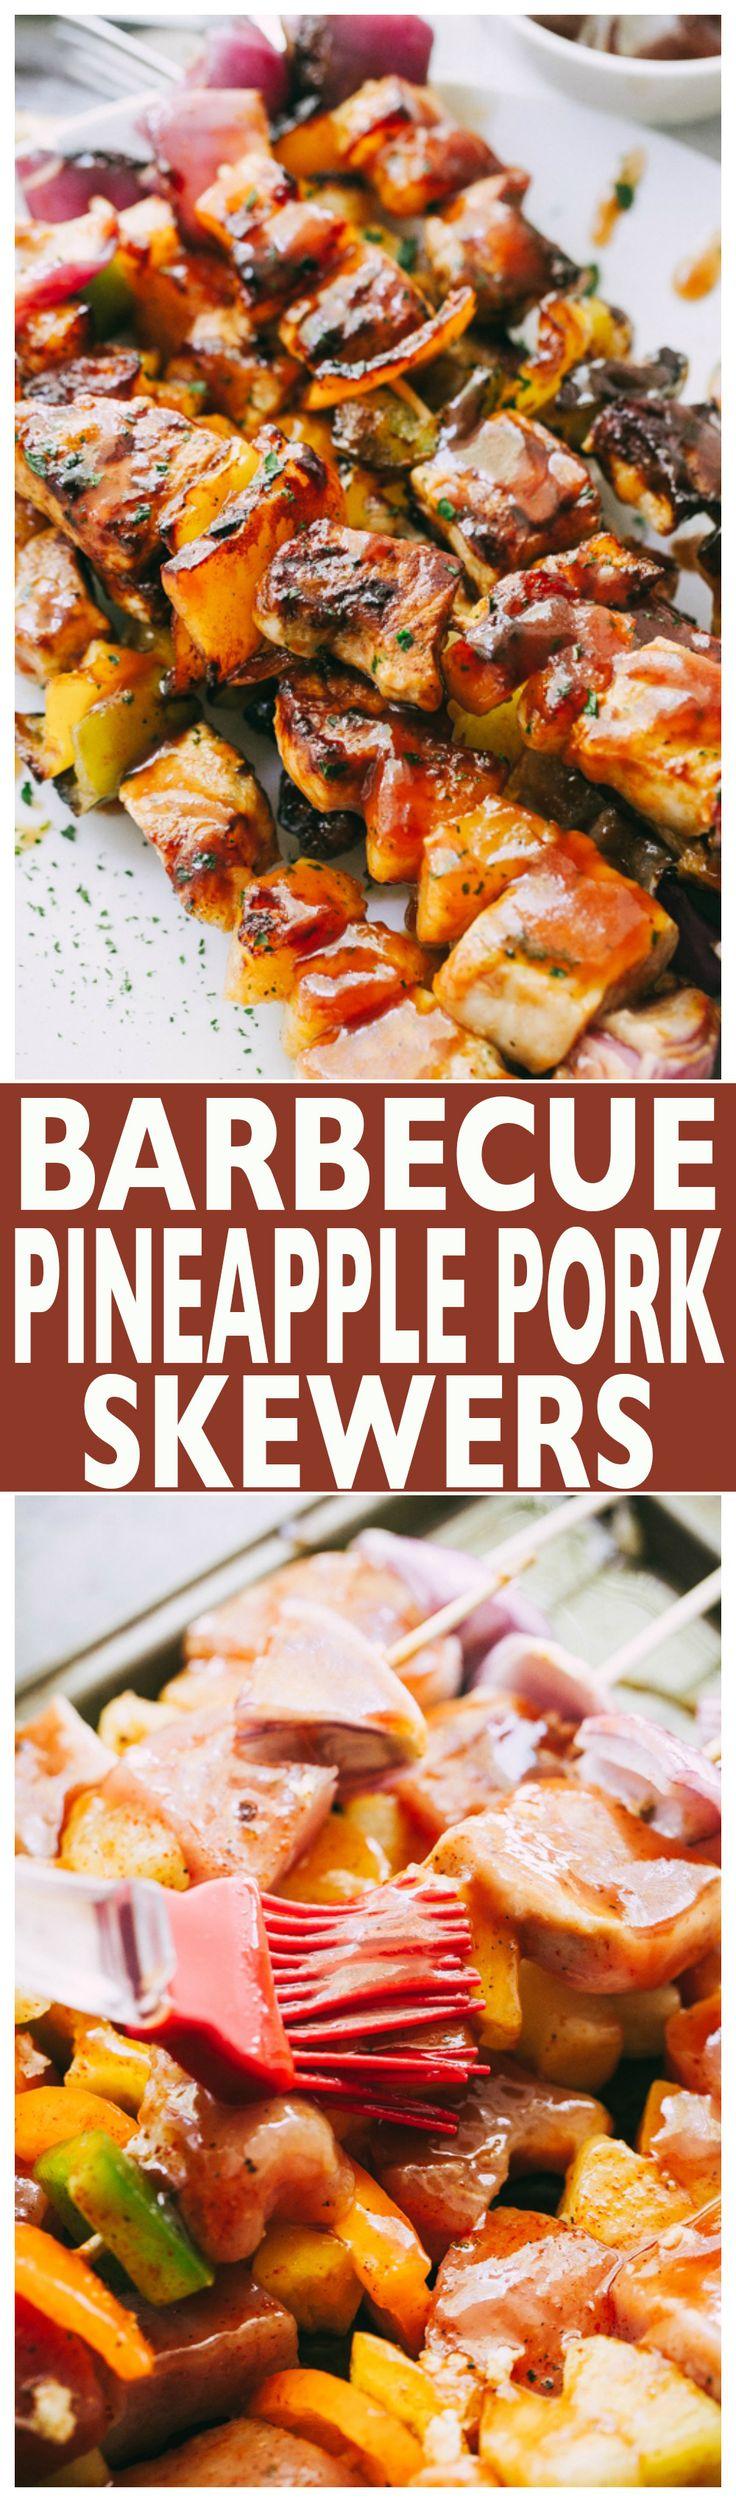 Barbecue Pineapple and Pork Skewers – Stacked with pork, sweet pineapples, and veggies, these juicy barbecue pork skewers are simple, incredible, and SO darn flavorful!